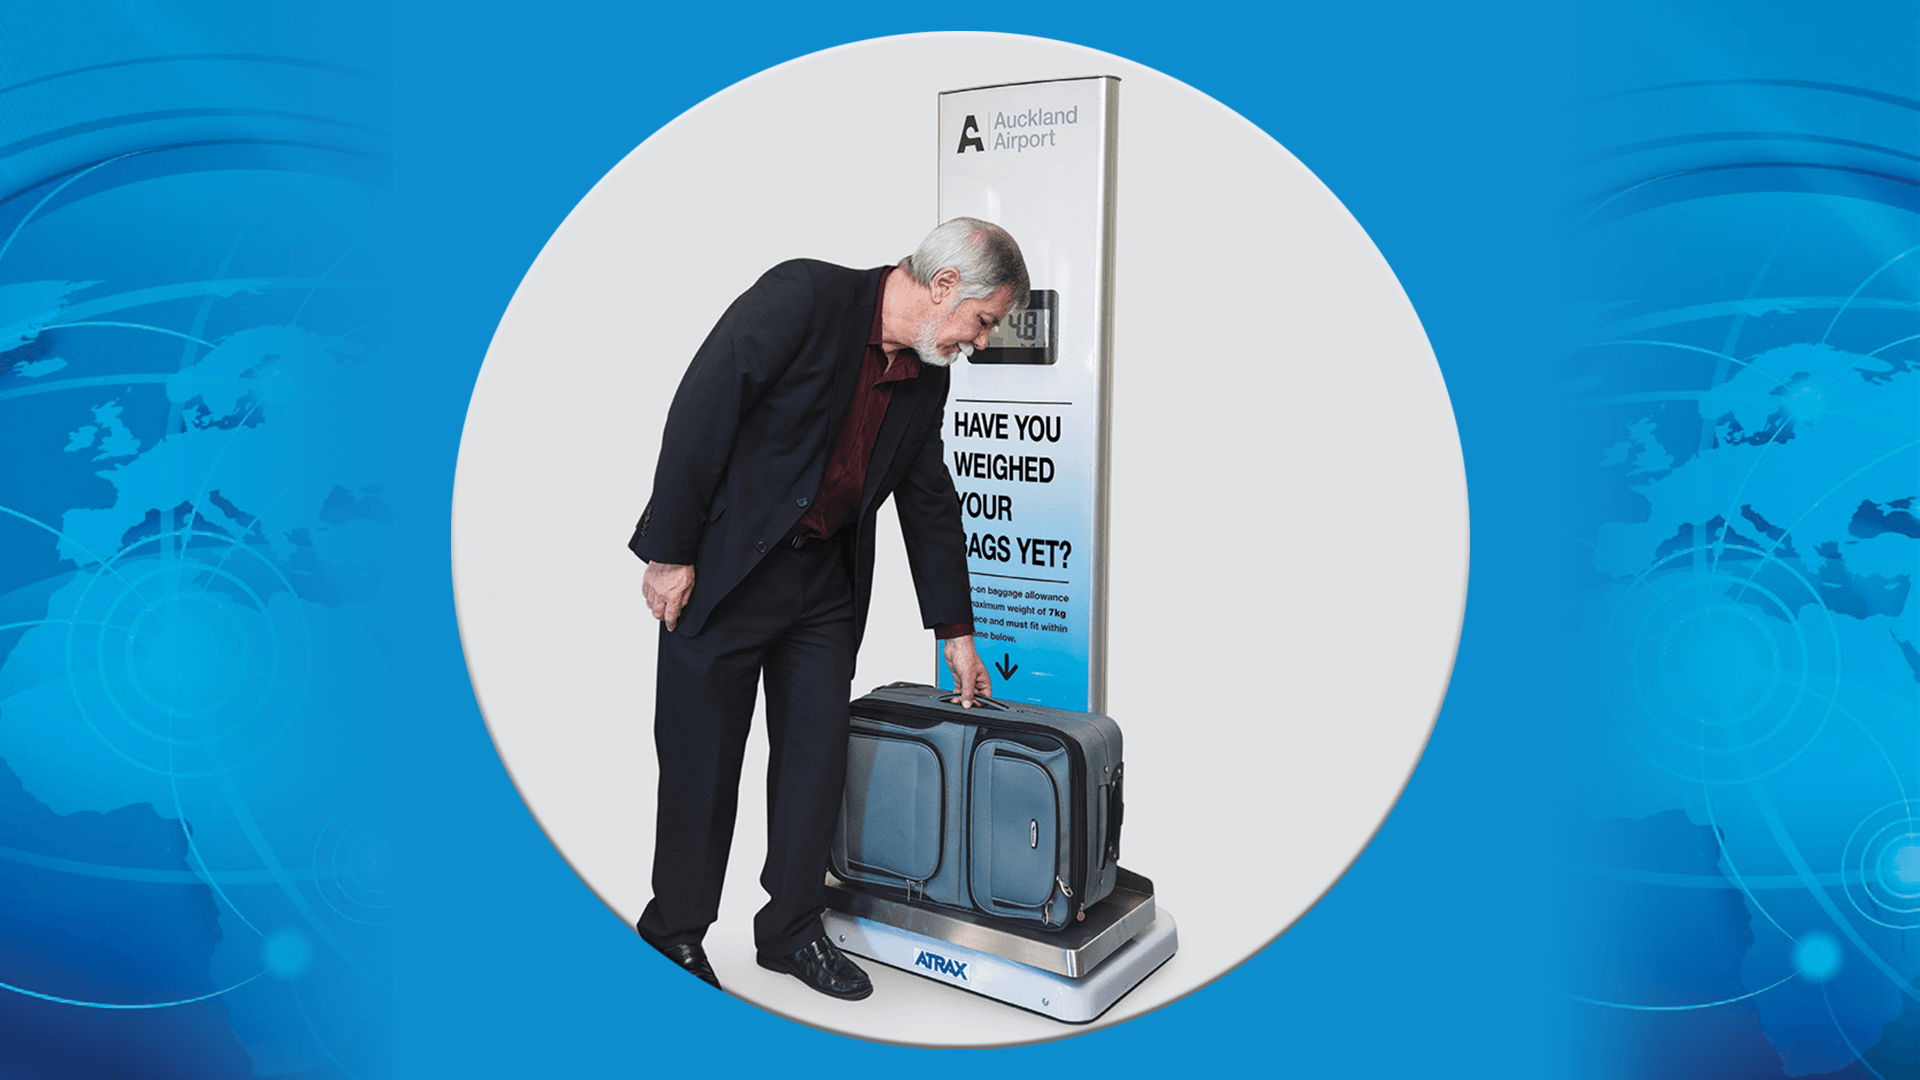 Atrax Self-Check Scales (Battery Powered)   Atrax Products   Airport Baggage Scales   1920x1080